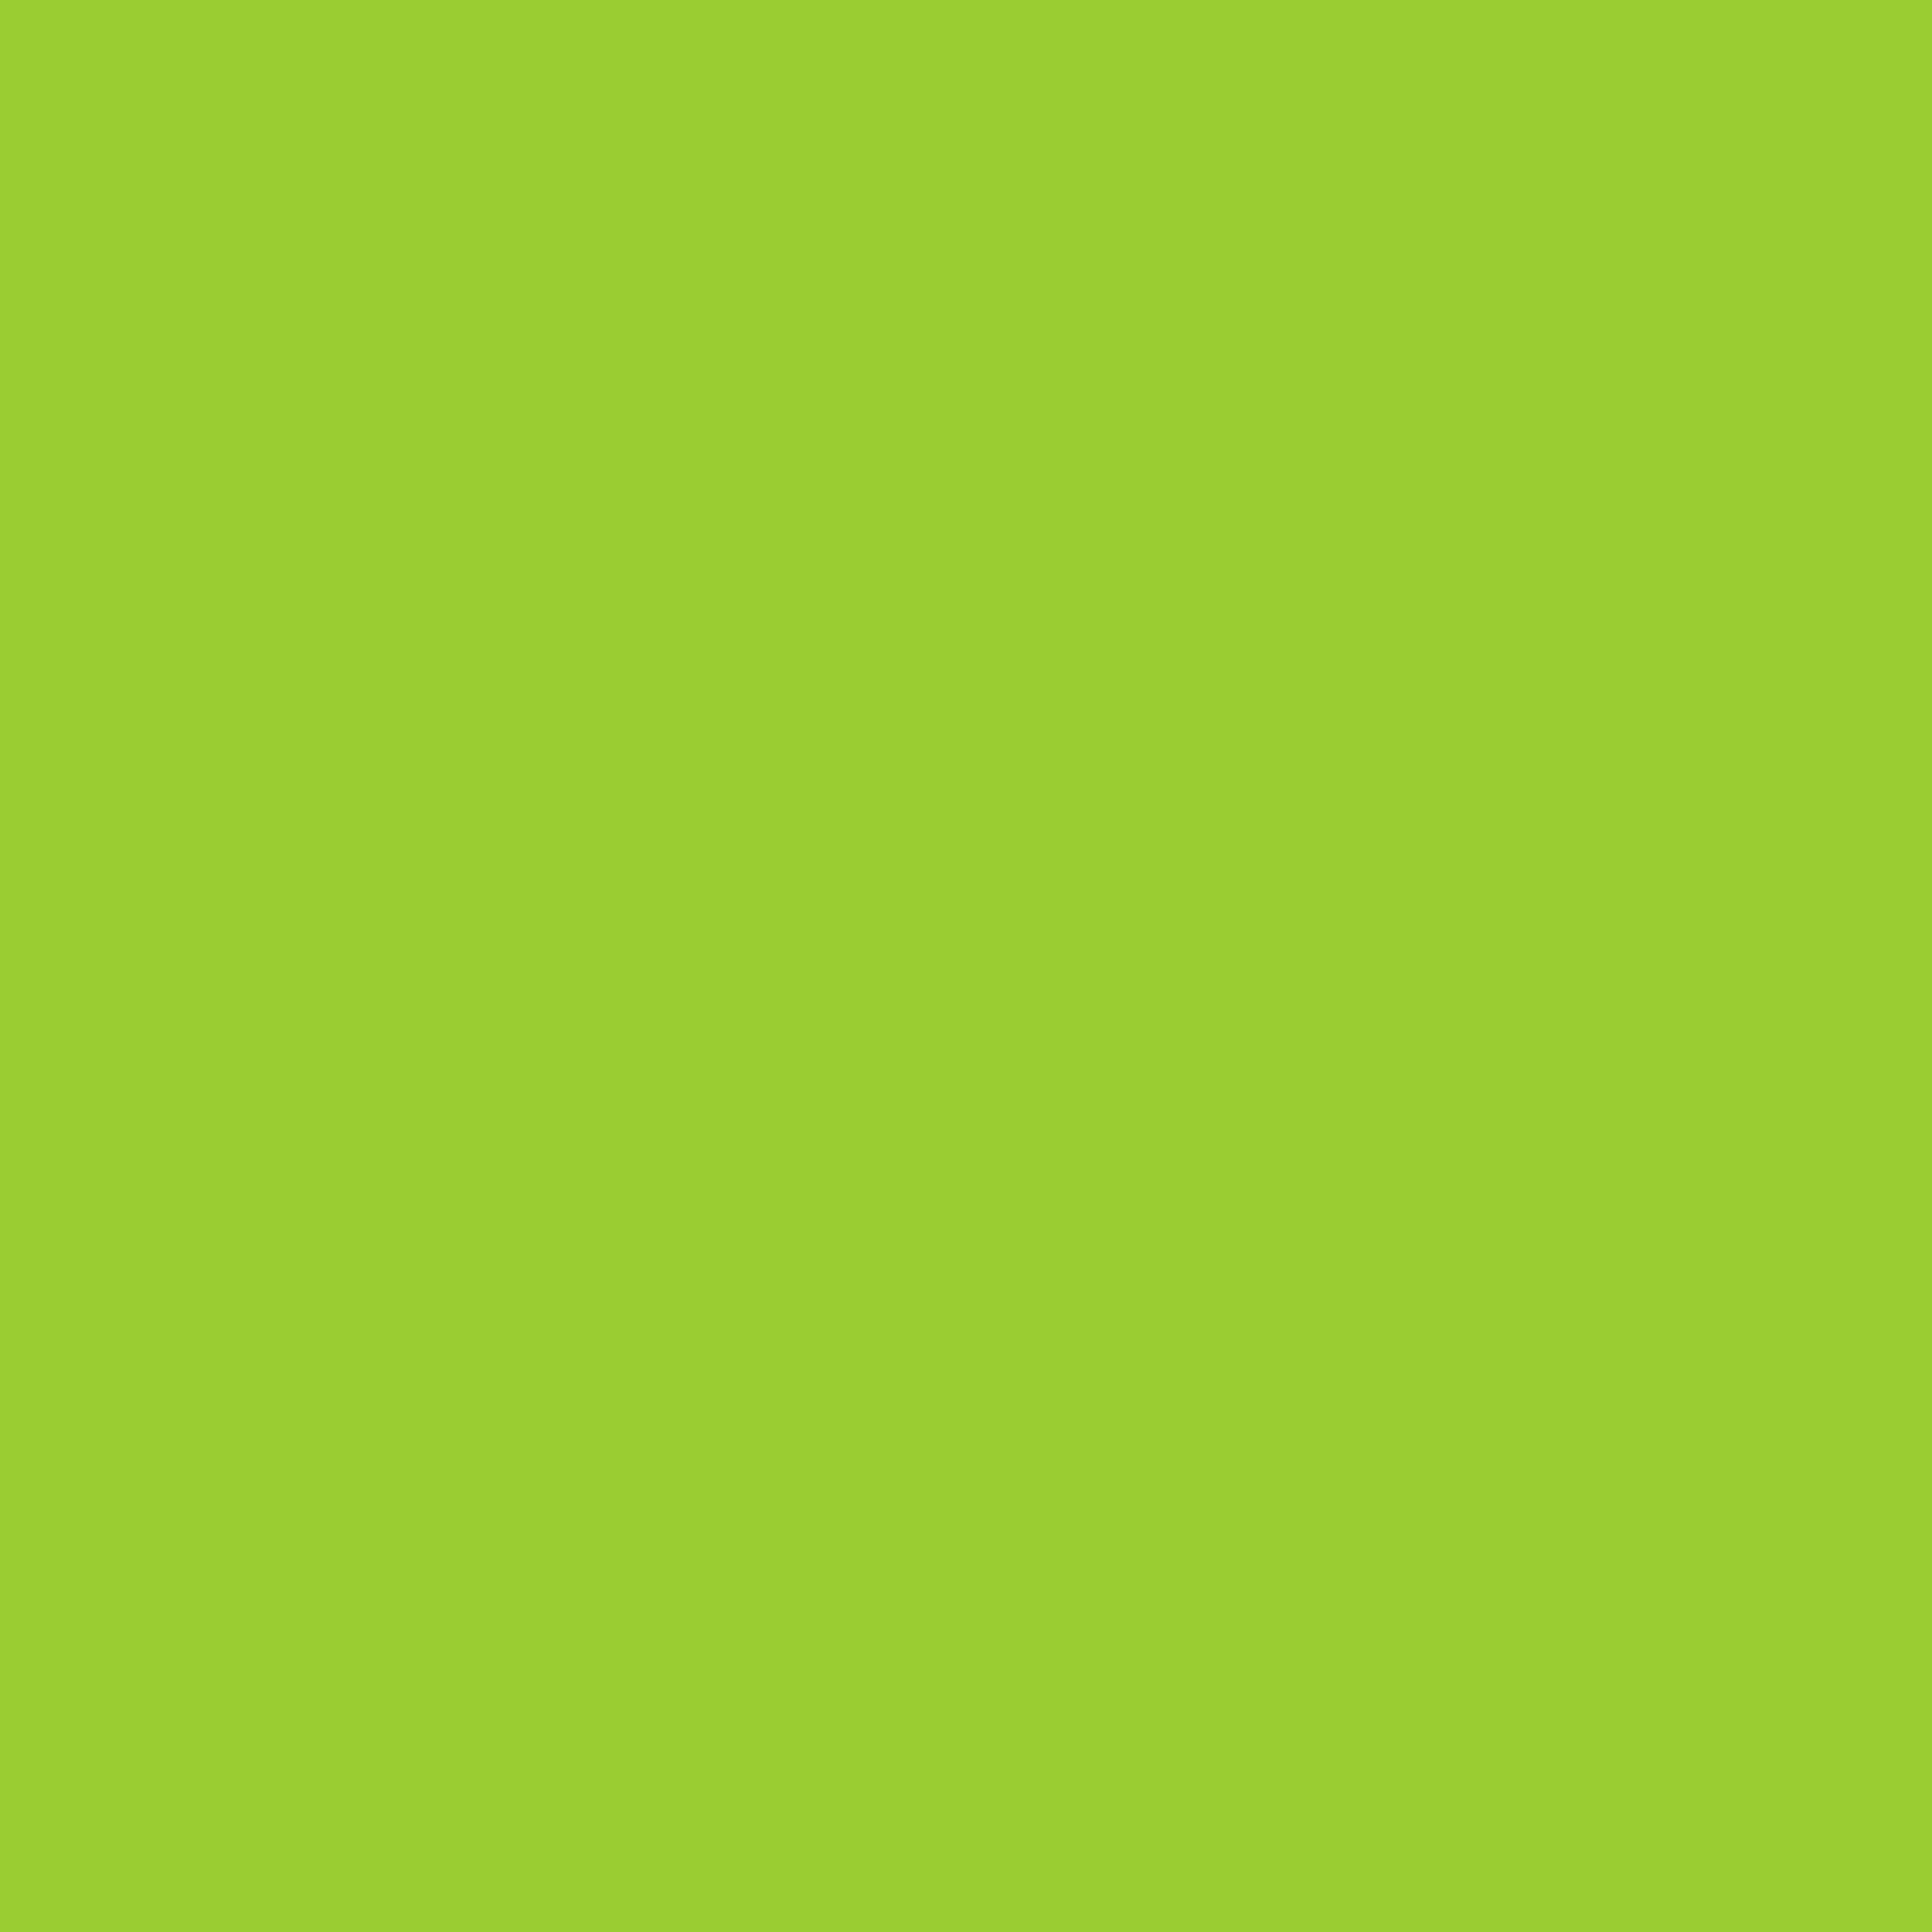 2048x2048 Yellow-green Solid Color Background